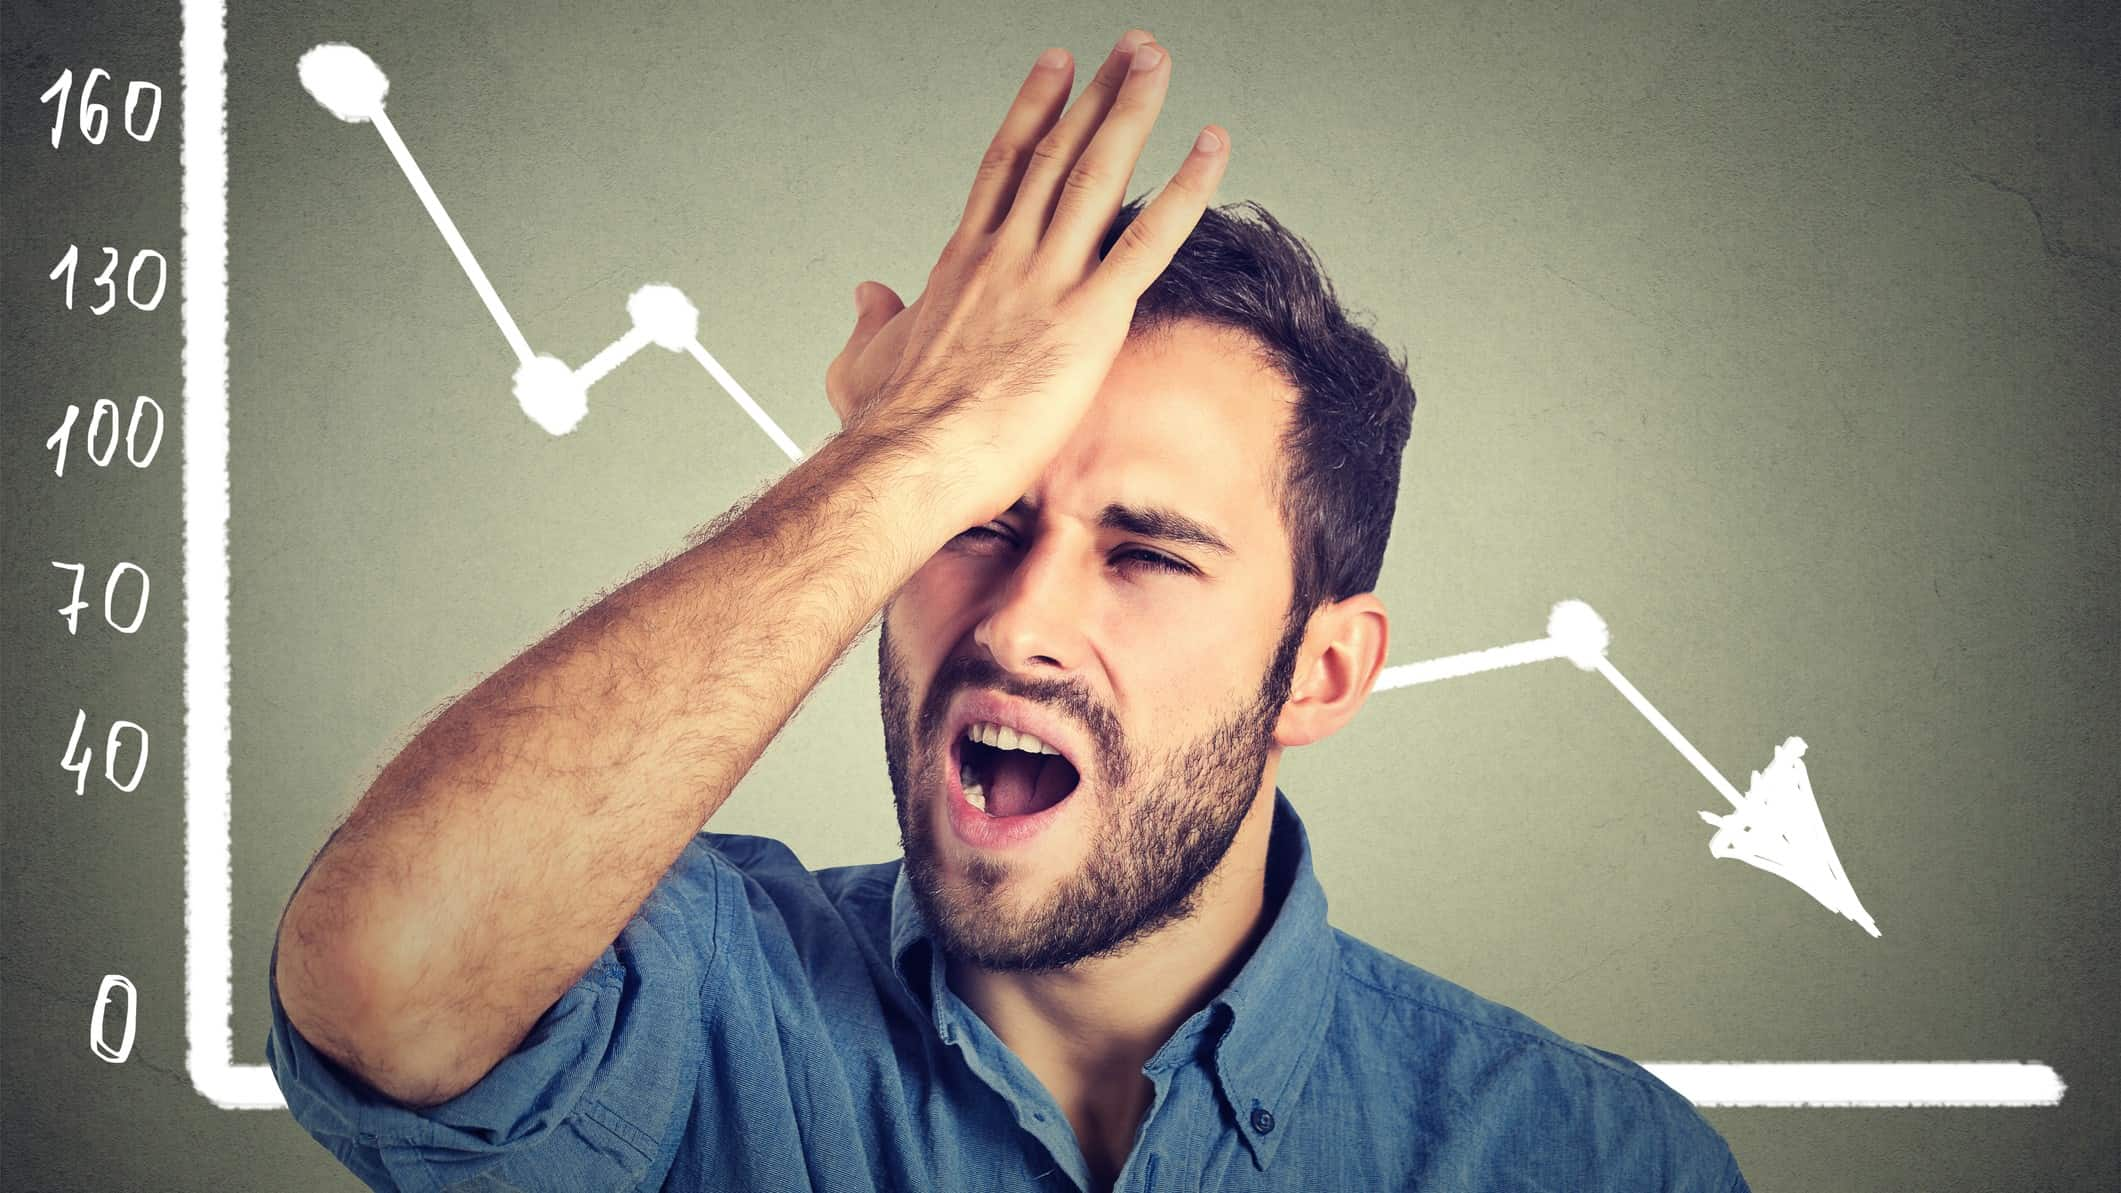 A man stands in front of a chart with an arrow going down and slaps his forehead in frustration.